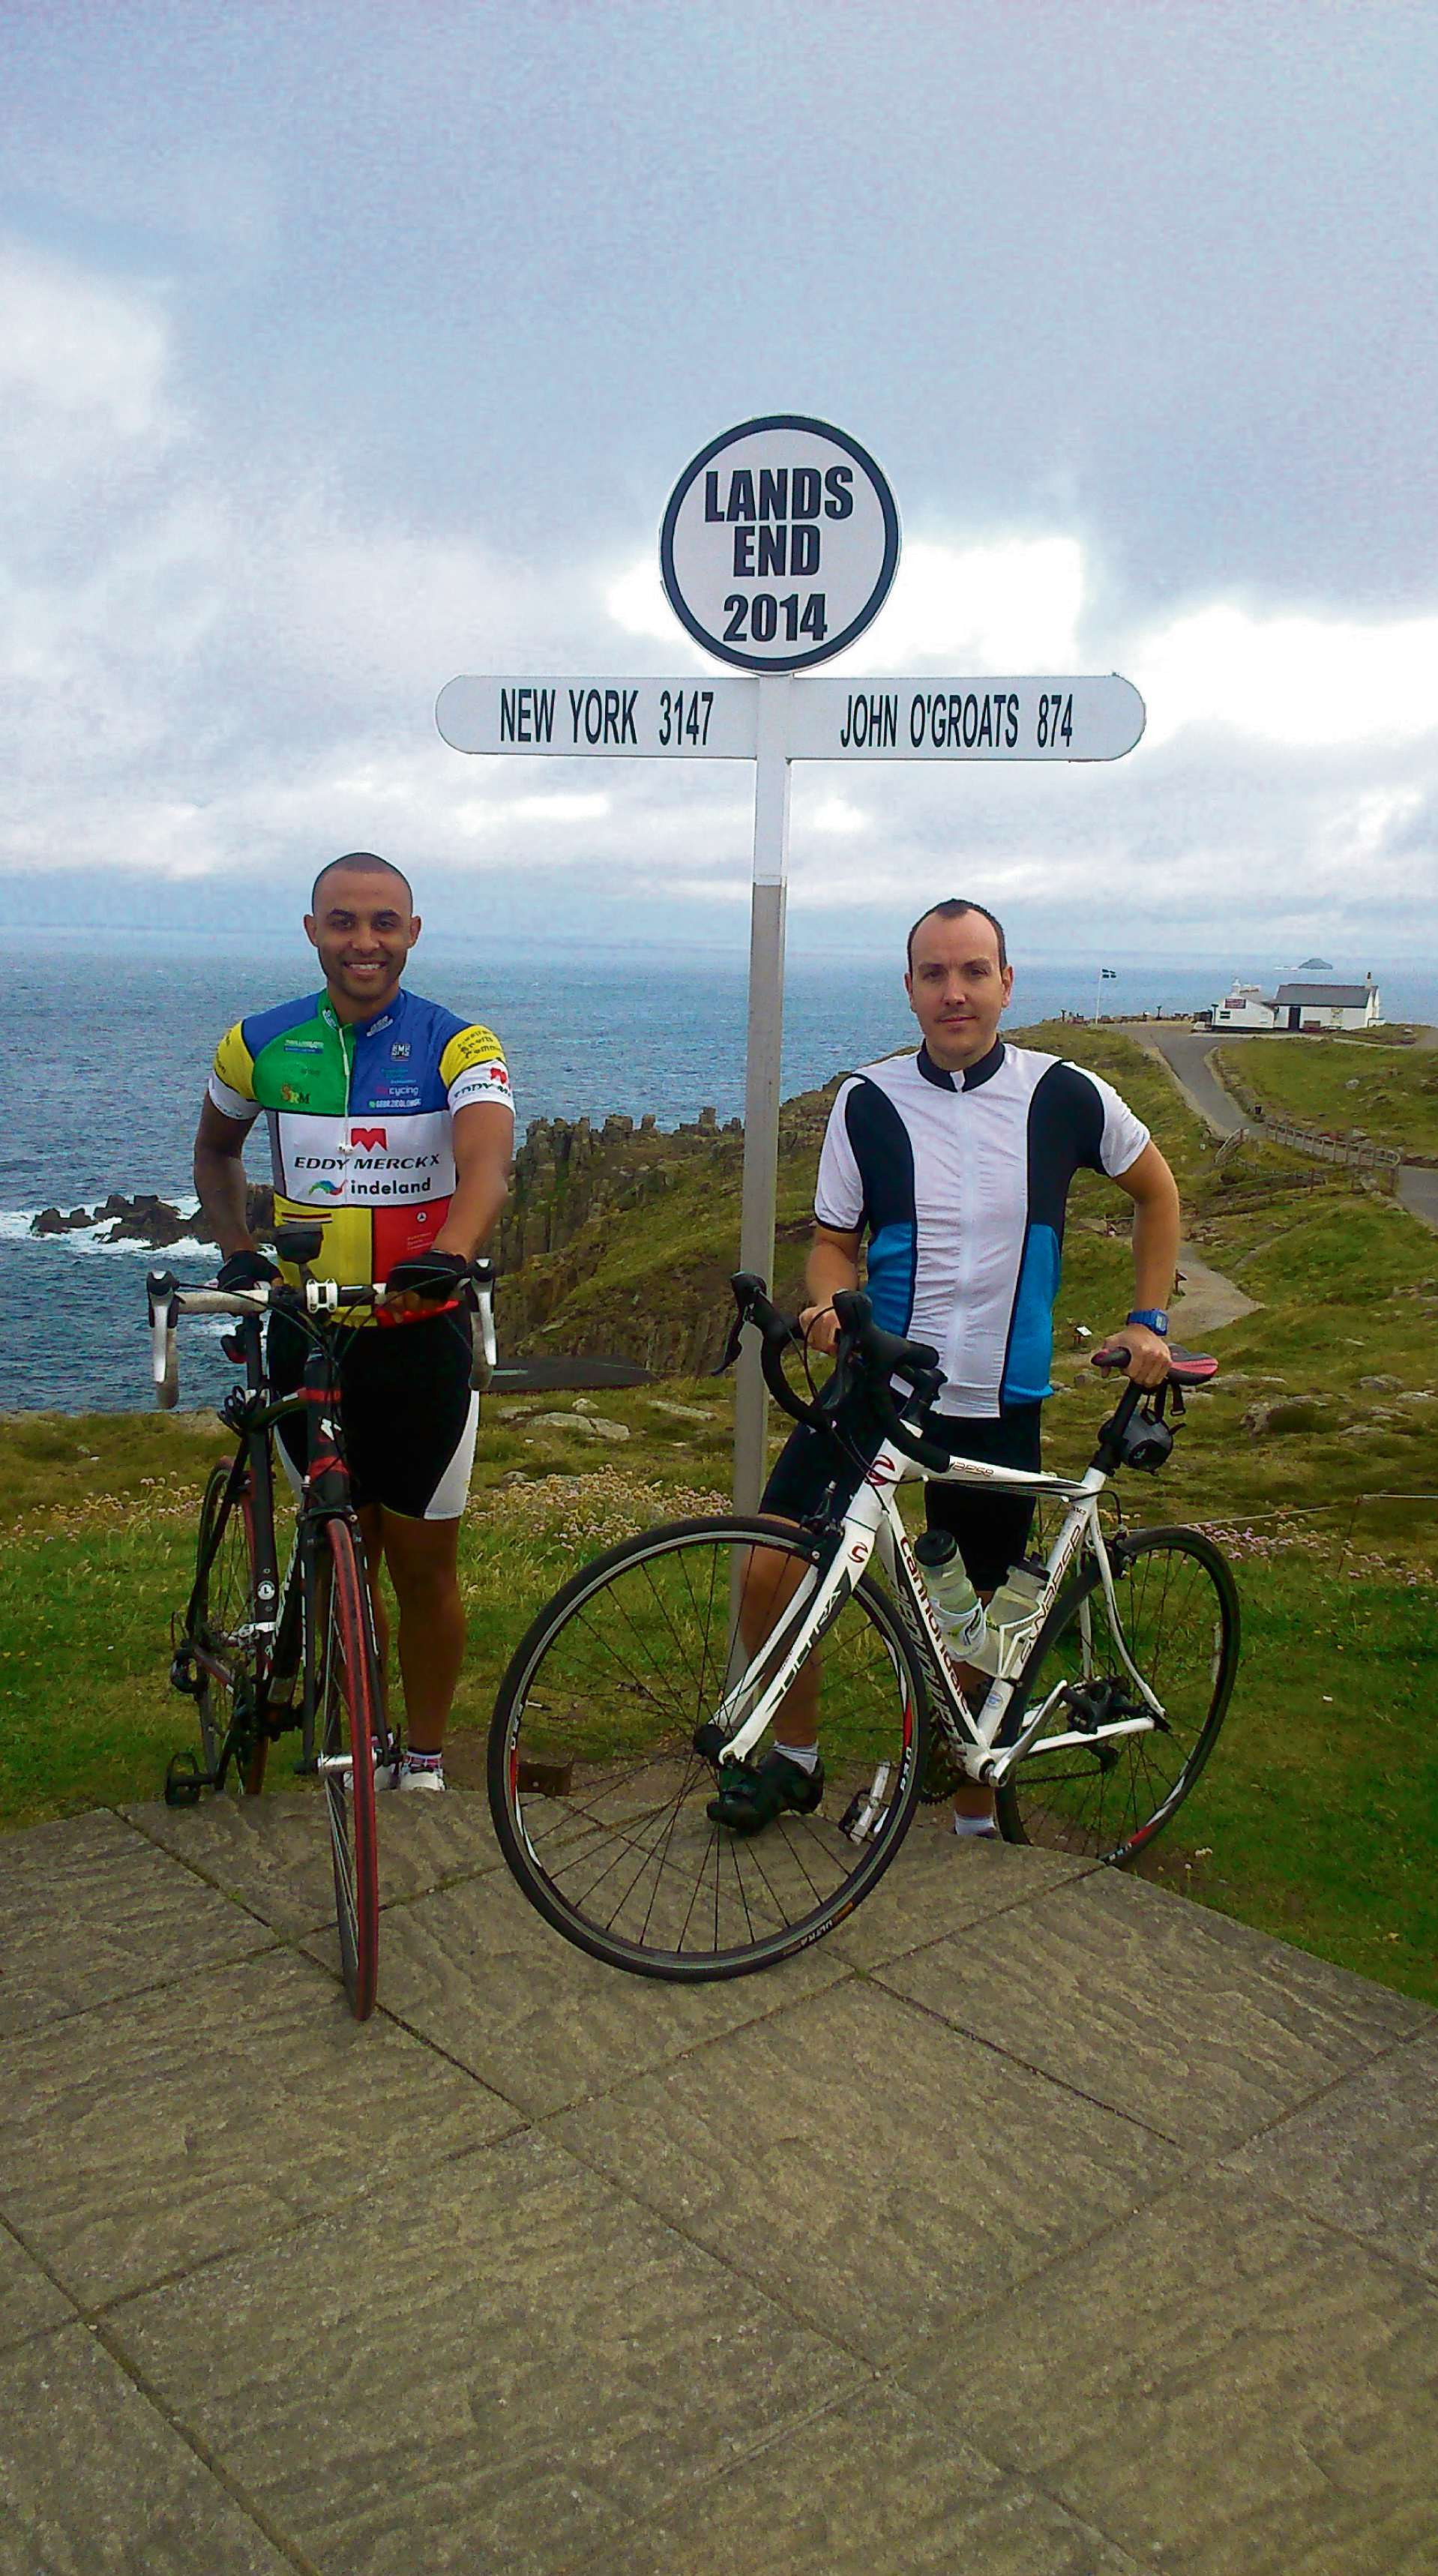 BIKE RIDE: Rob Wykes, right, with Joe Obi and Land's End